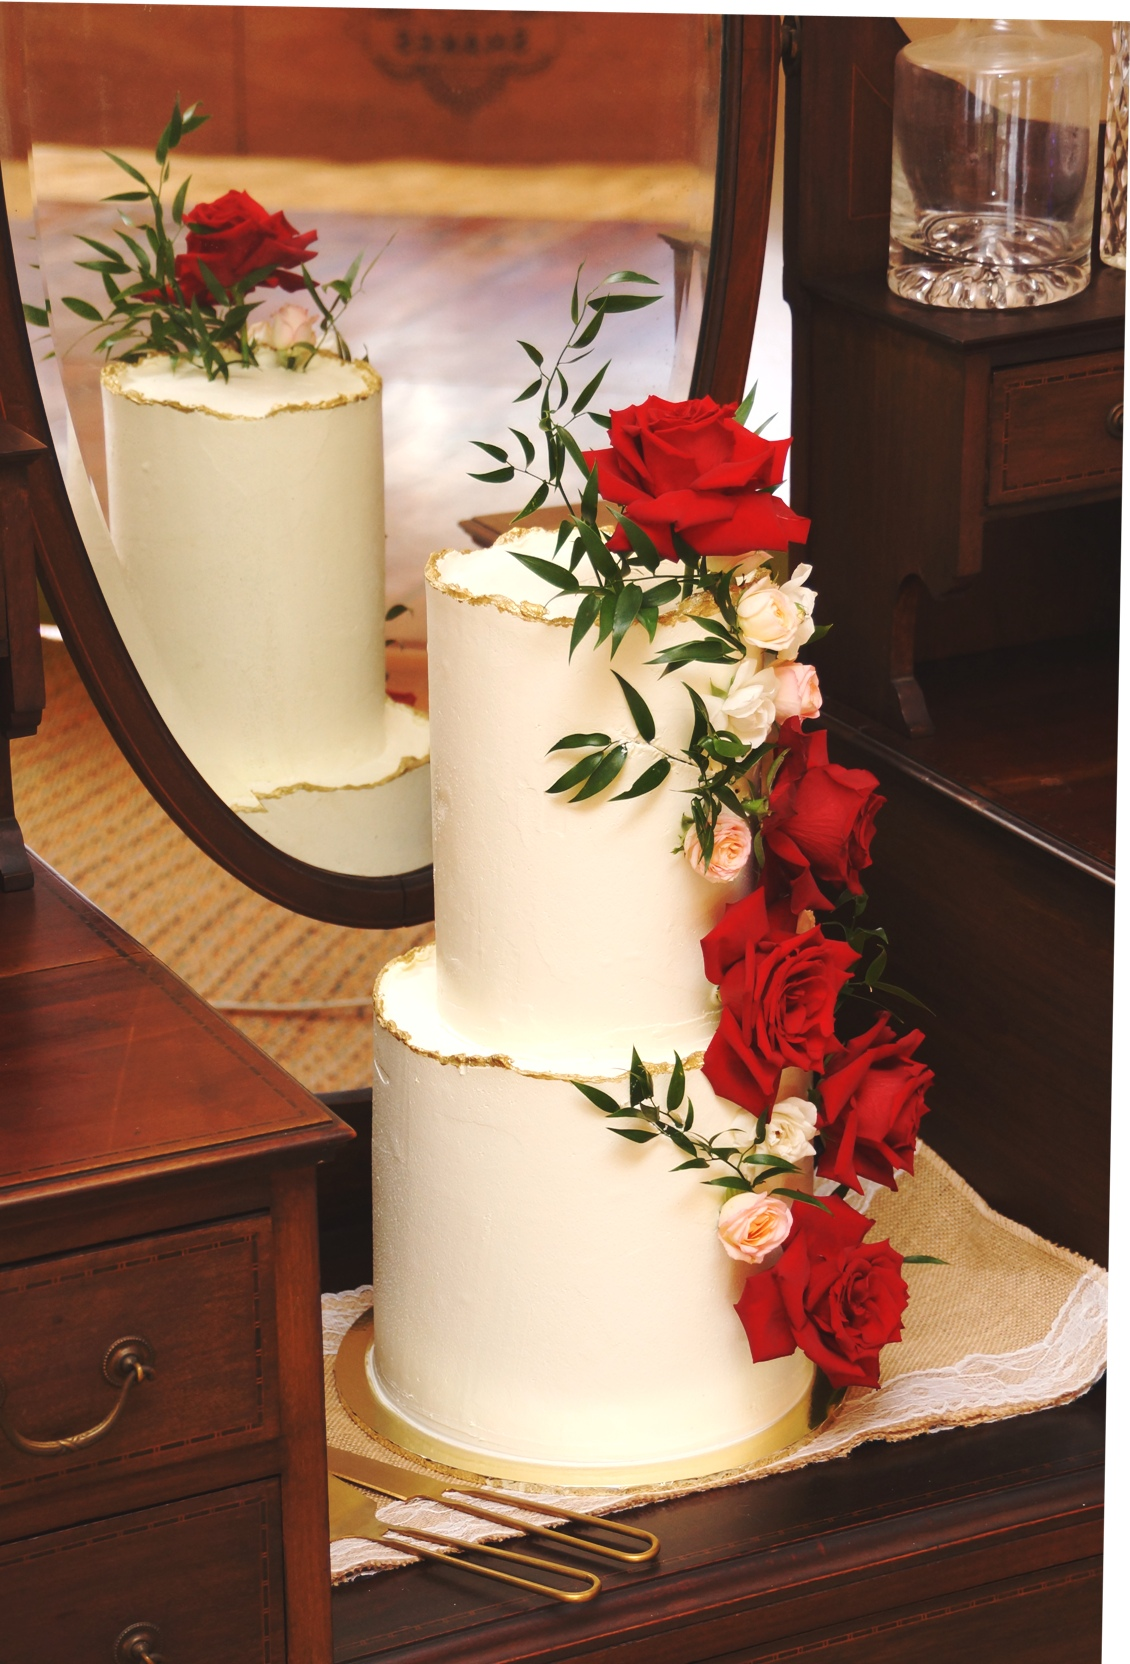 2 Tier Extra tall smooth buttercream wit